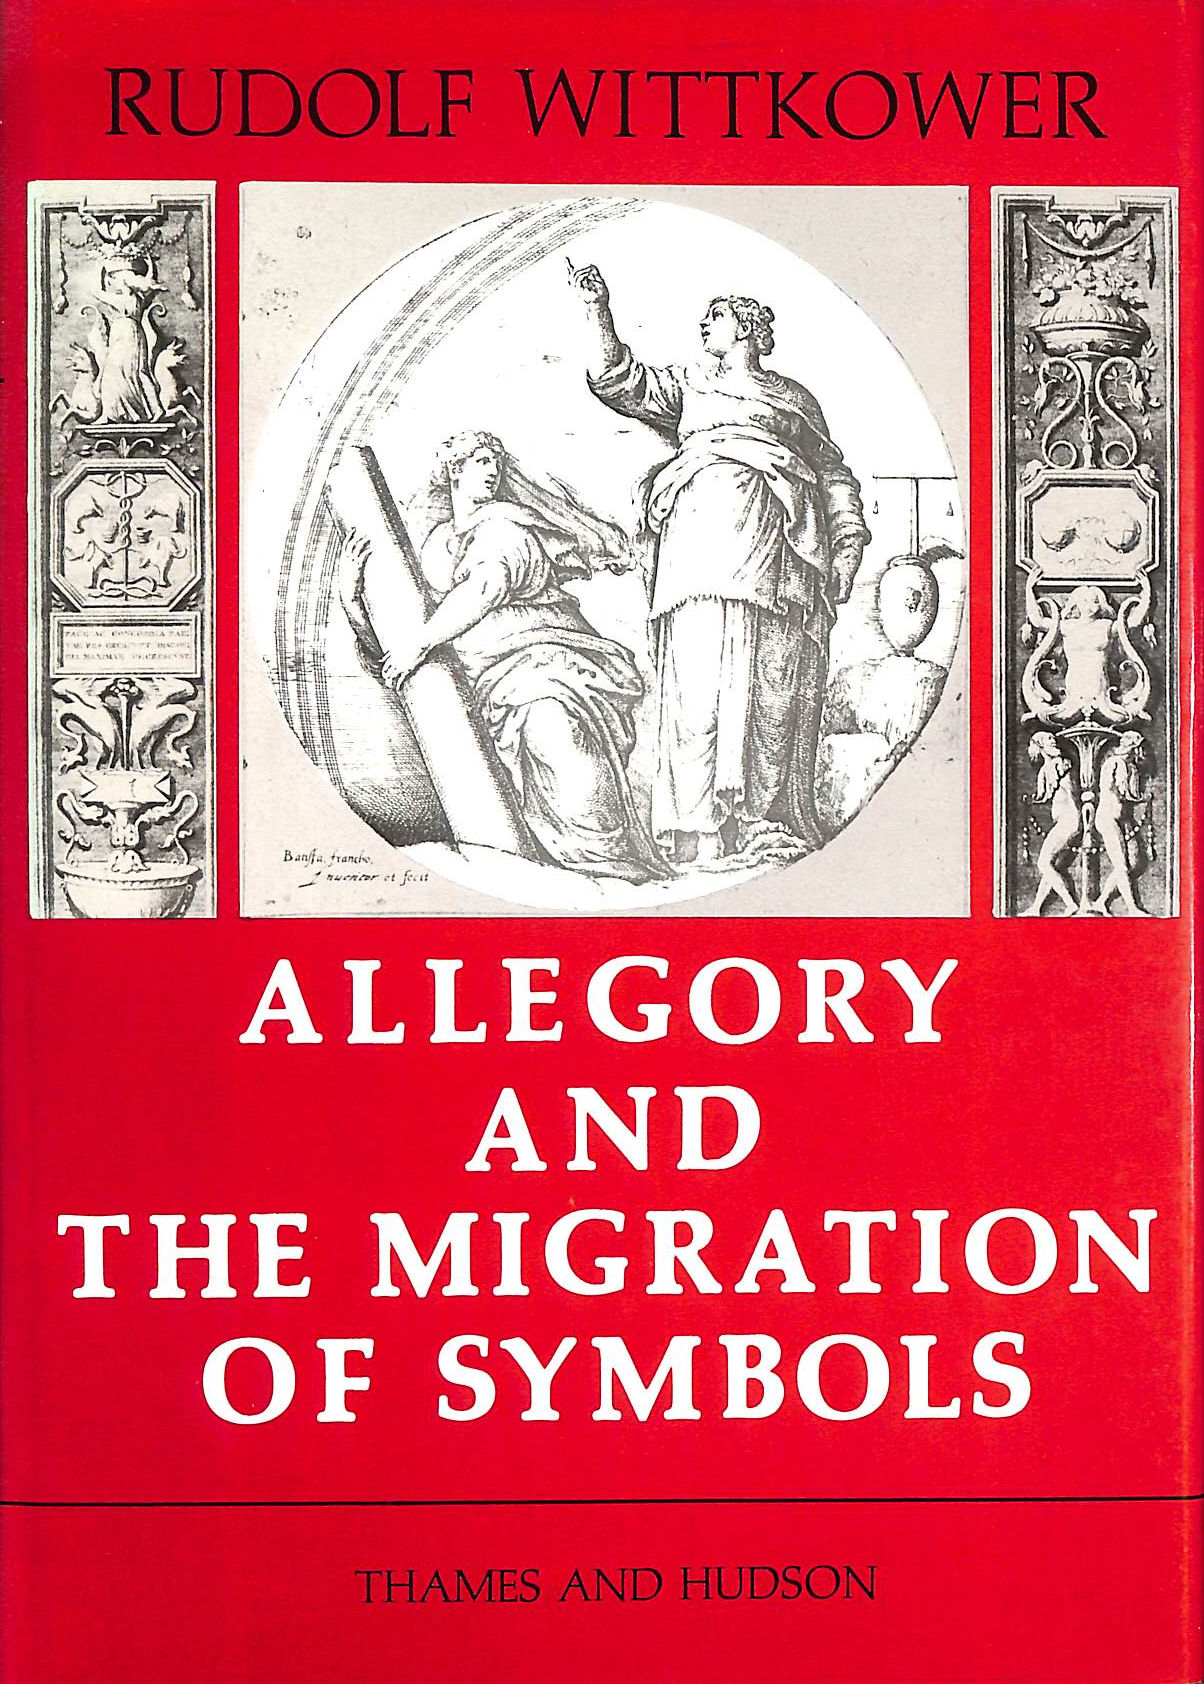 Image for Allegory And The Migration Of Symbols (The Collected Essays Of Rudolf Wittkower)